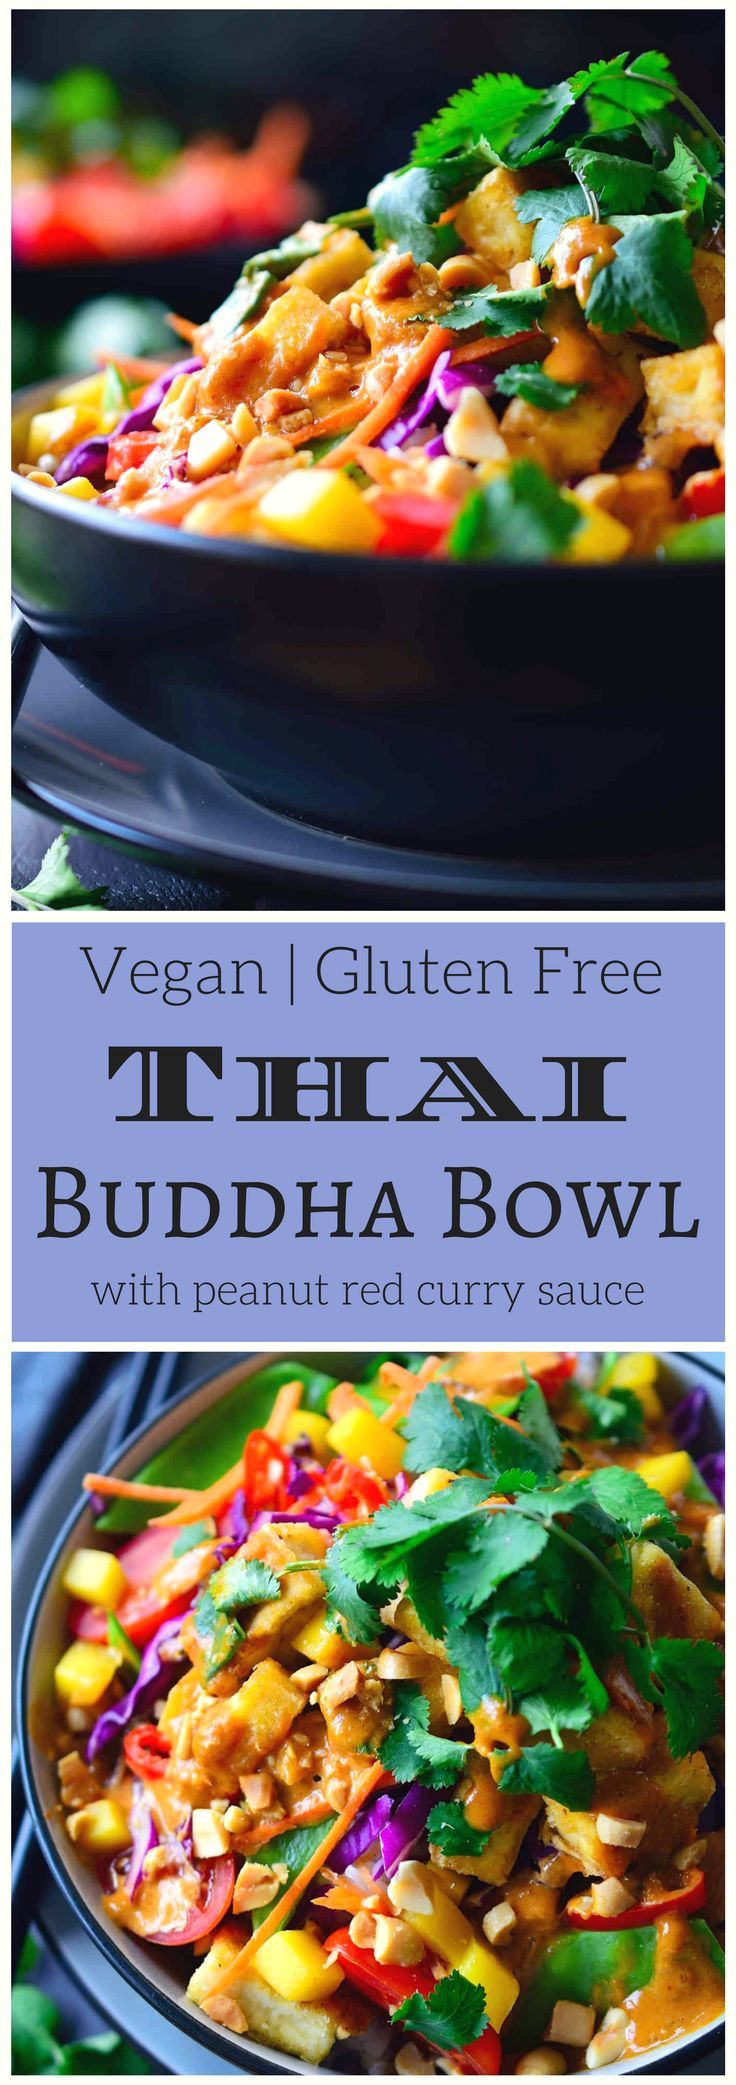 This Thai Buddha bowl is quick and easy to put together with heaps of fresh vegetables and crispy fried tofu served over coconut rice and topped off with a simple Thai peanut sauce with spicy red curr